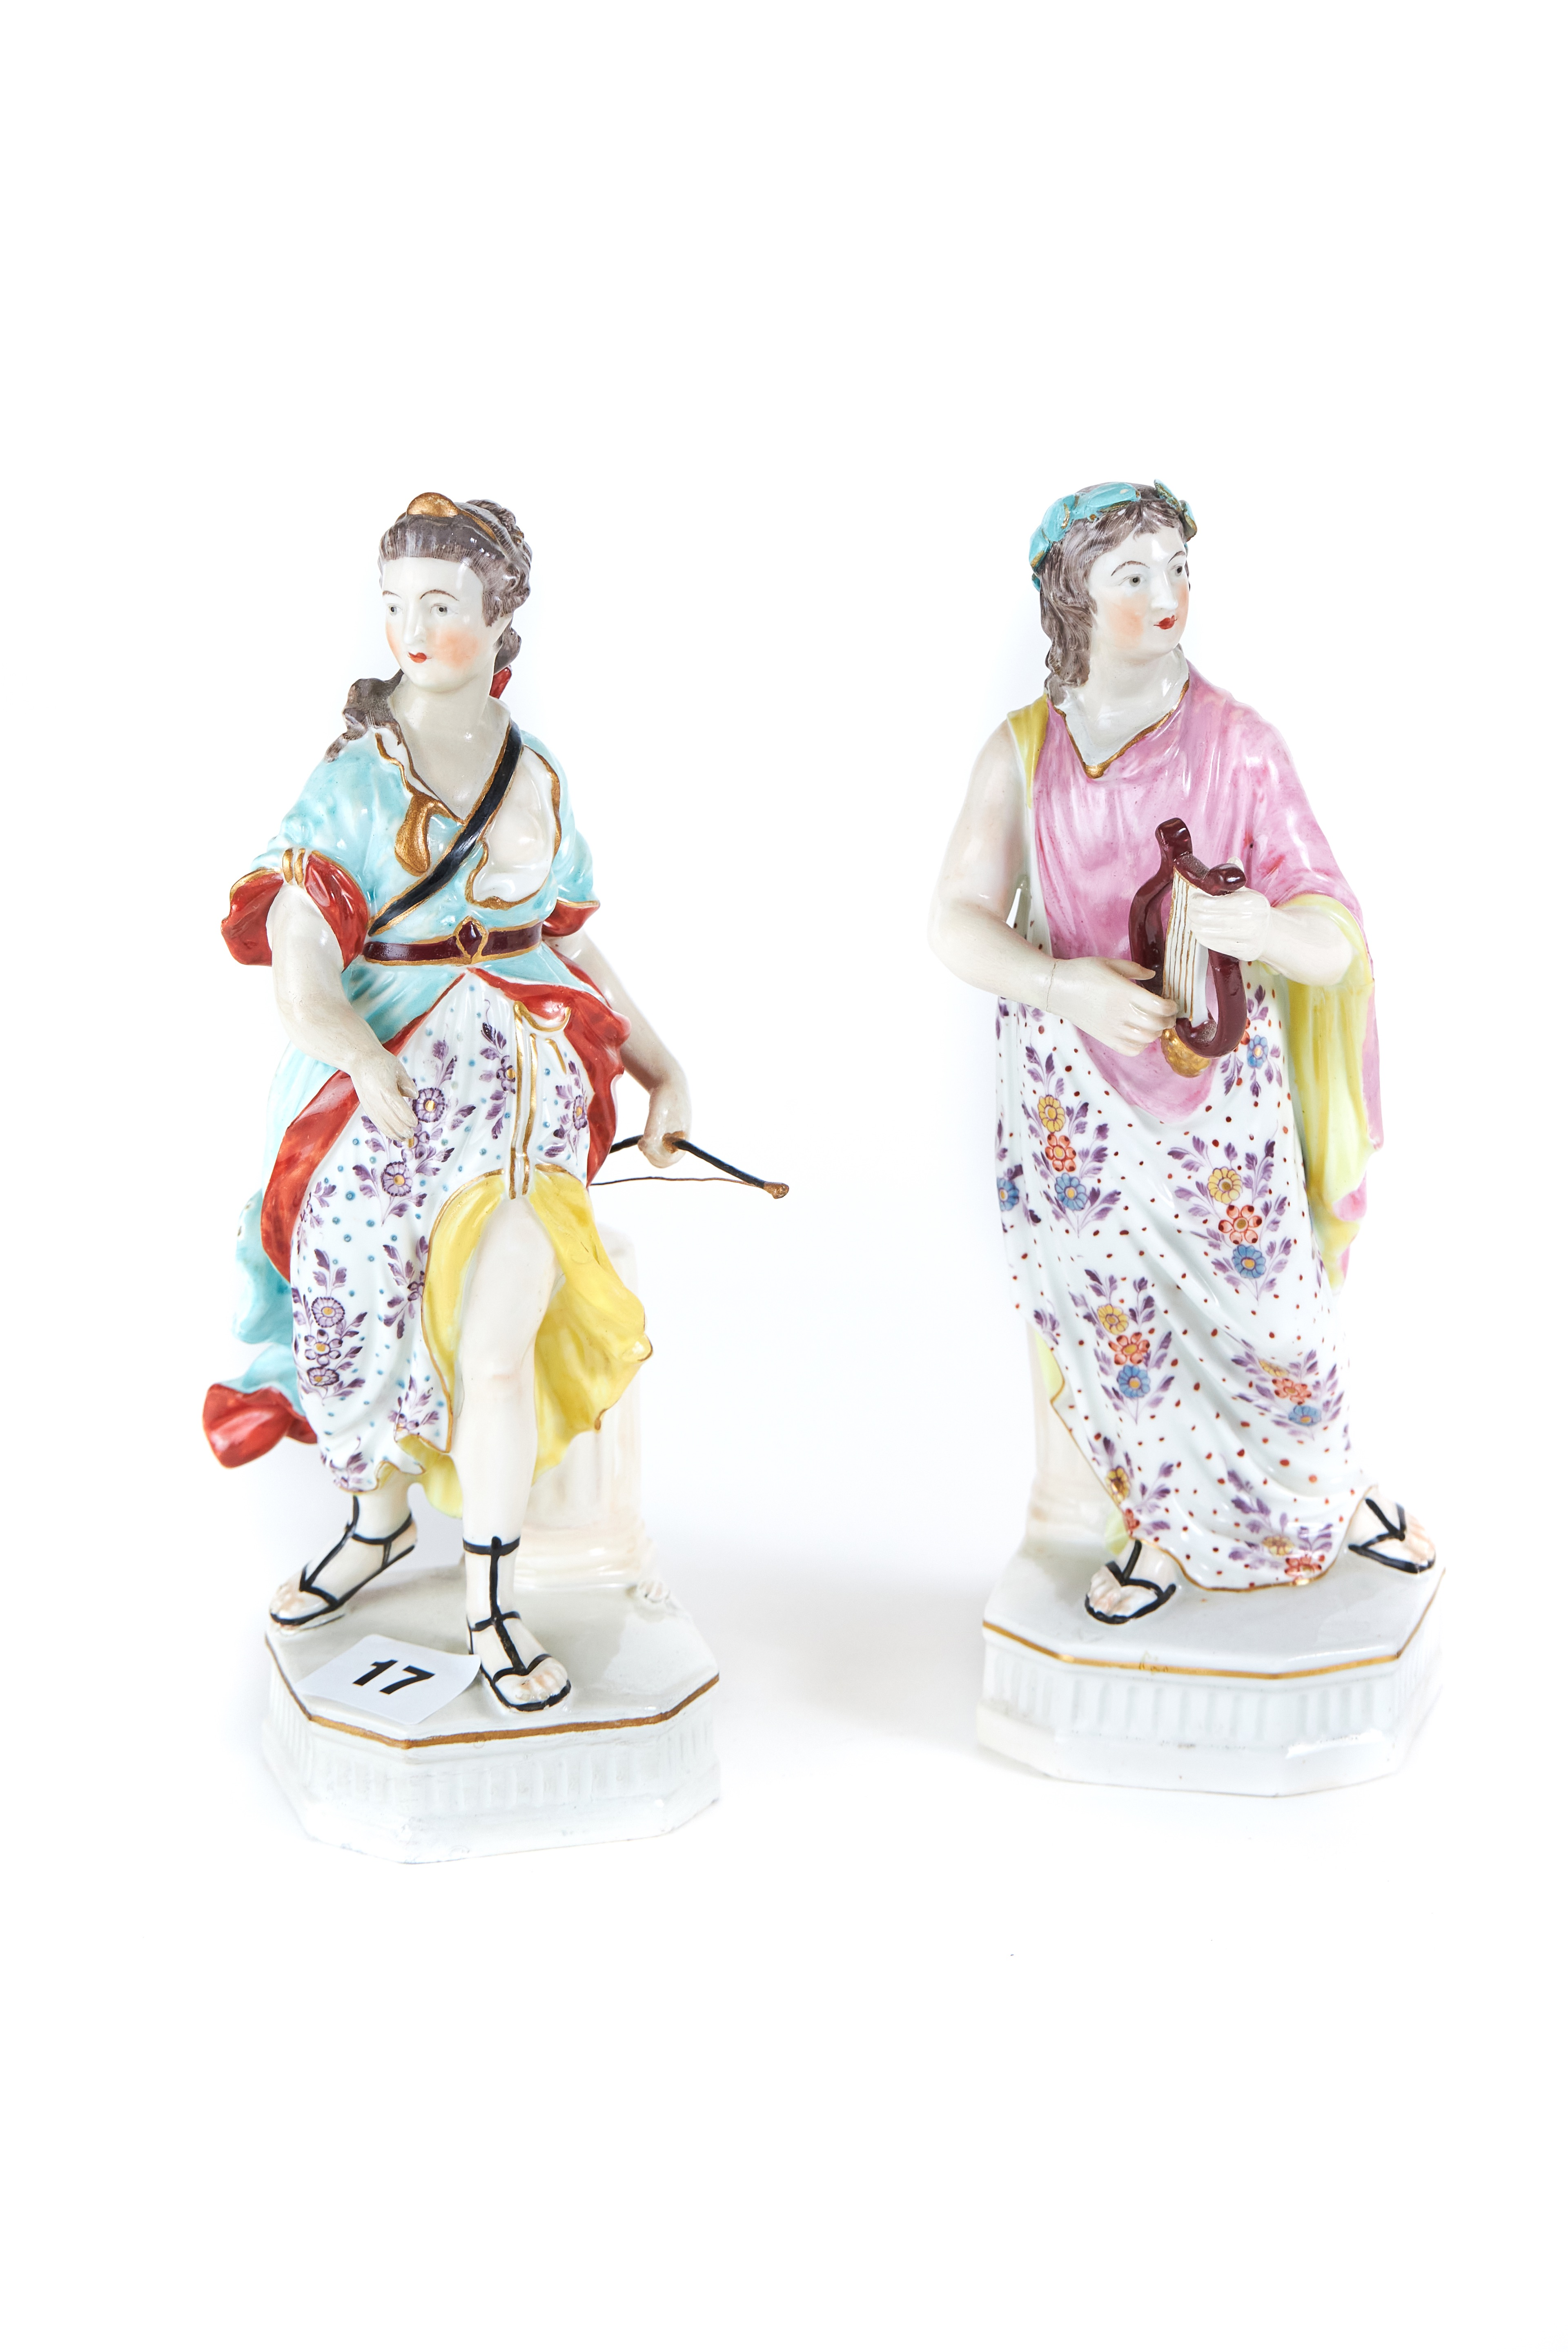 Lot 17 - A PAIR OF 18TH CENTURY DERBY PORCELAIN FIGURES decorated in polychrome enamels,